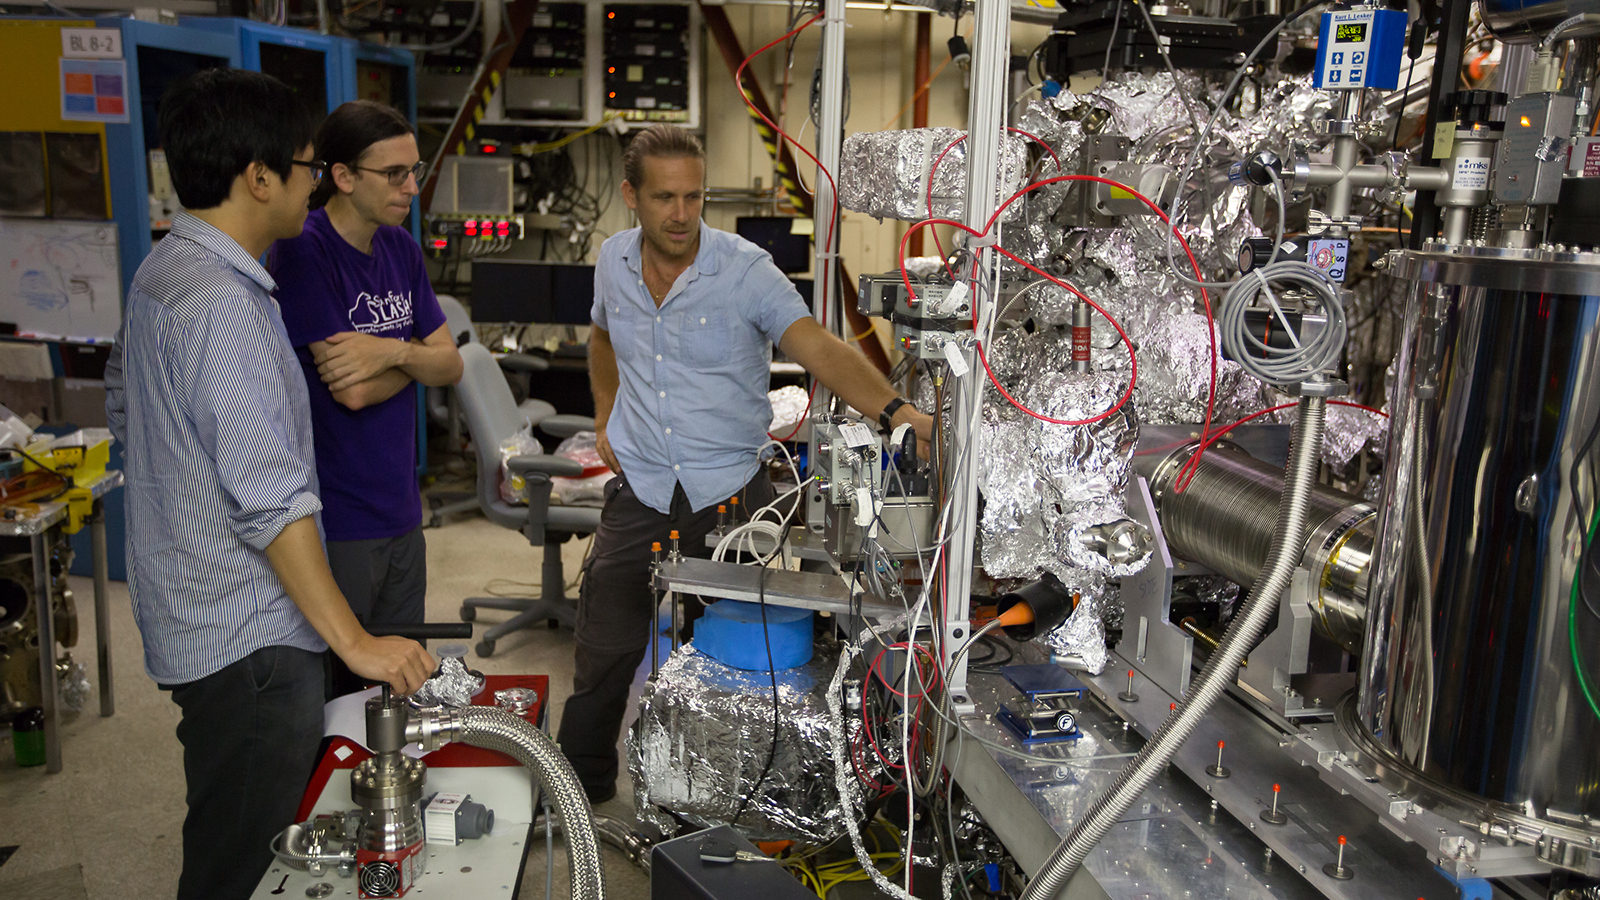 Sangjun Lee, Jamie Titus and Dennis Norlund at the Stanford Synchrotron Radiation Lightsource